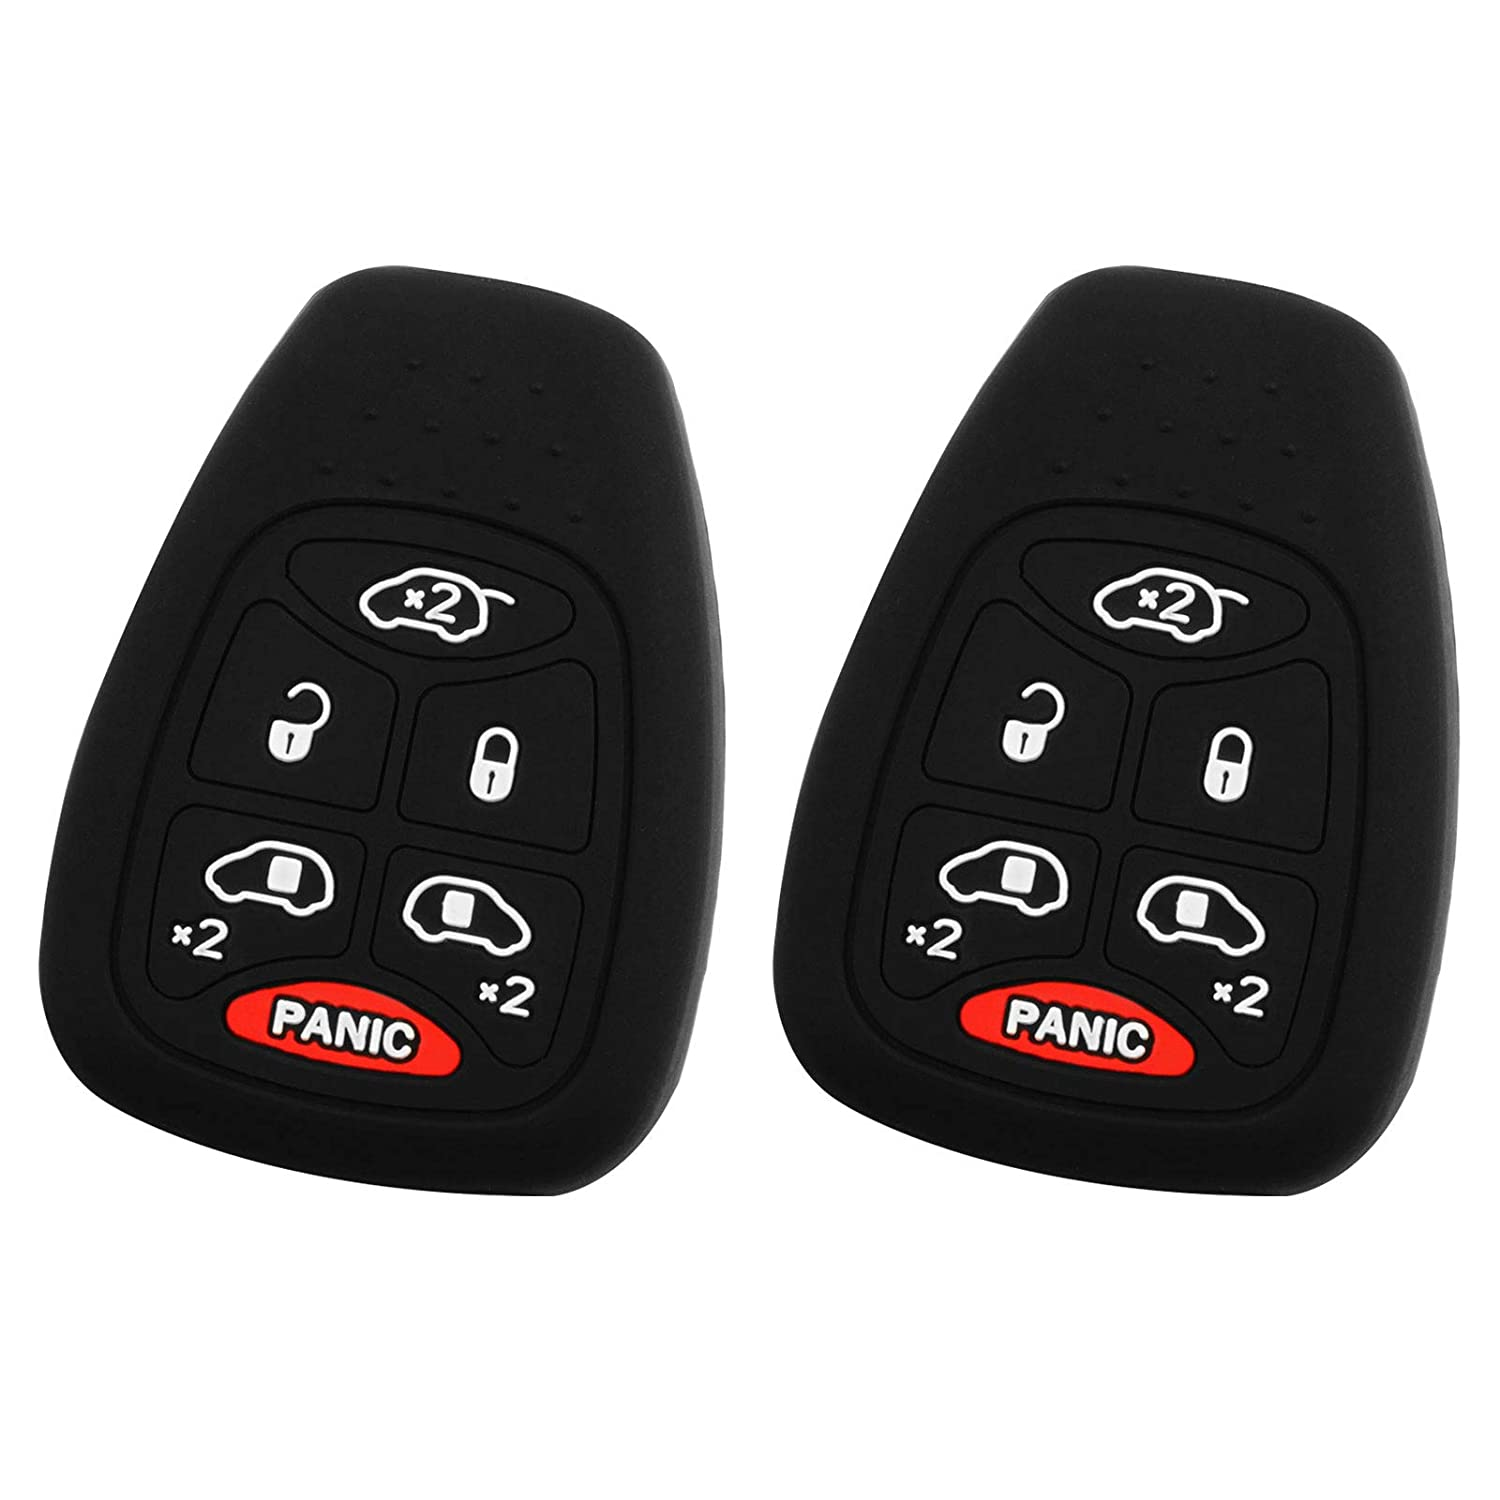 Pack of 2 KeyGuardz Keyless Remote Car Key Fob Outer Shell Cover Soft Rubber Case for Grand Caravan Town Country M3N5WY72XX